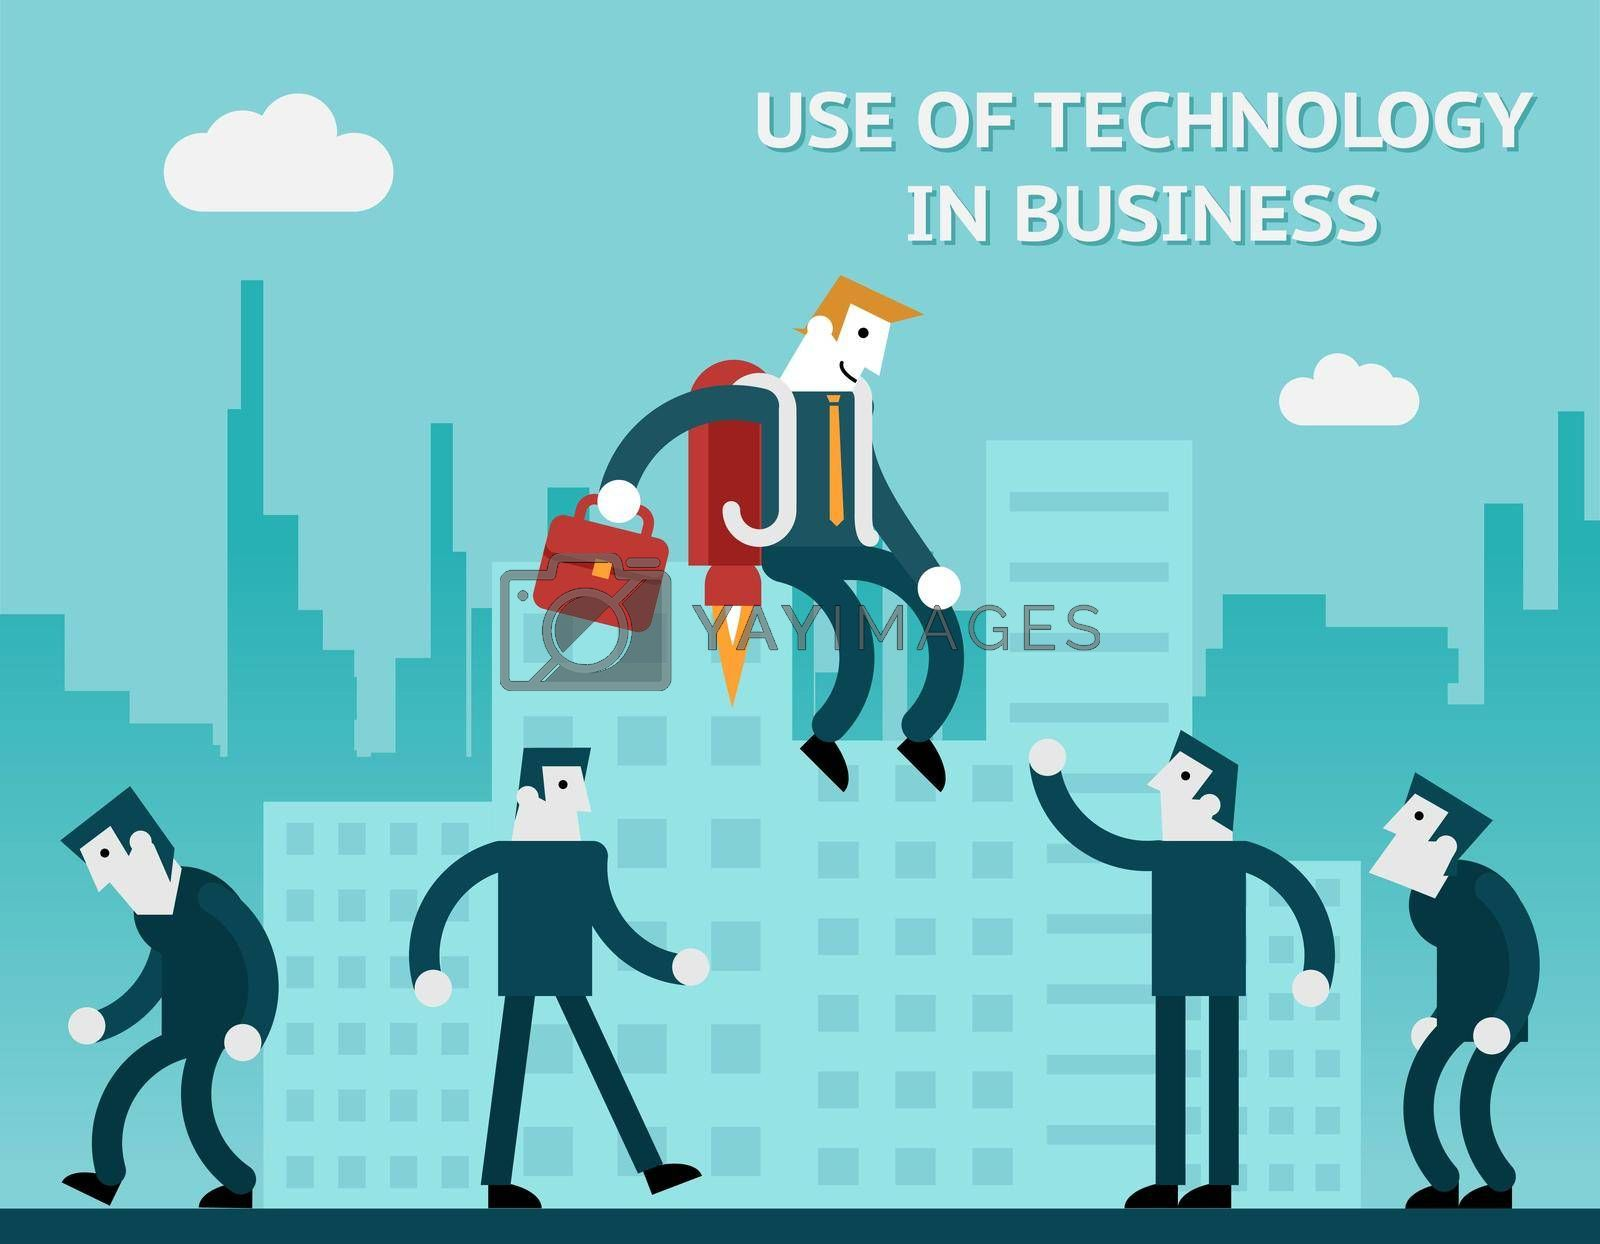 Royalty free image of Use of technology in business by mstjahanara